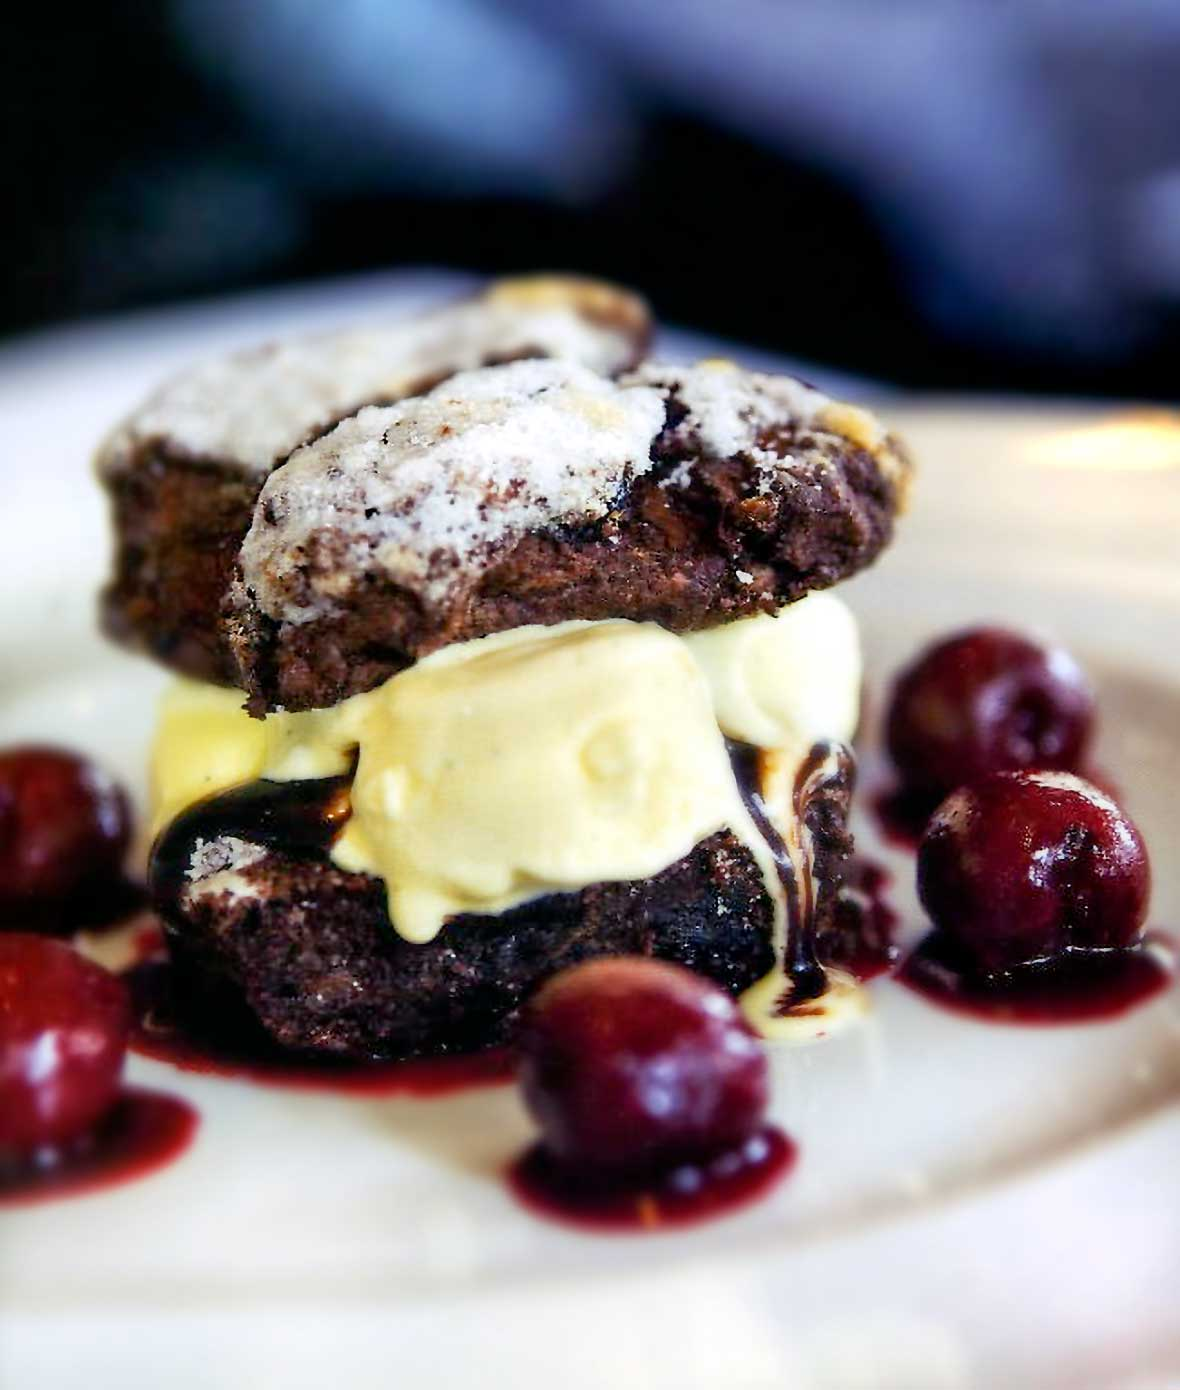 A chocolate cherry shortcake filled with vanilla ice cream and drizzled with a Cherries Jubilee sauce on a white plate